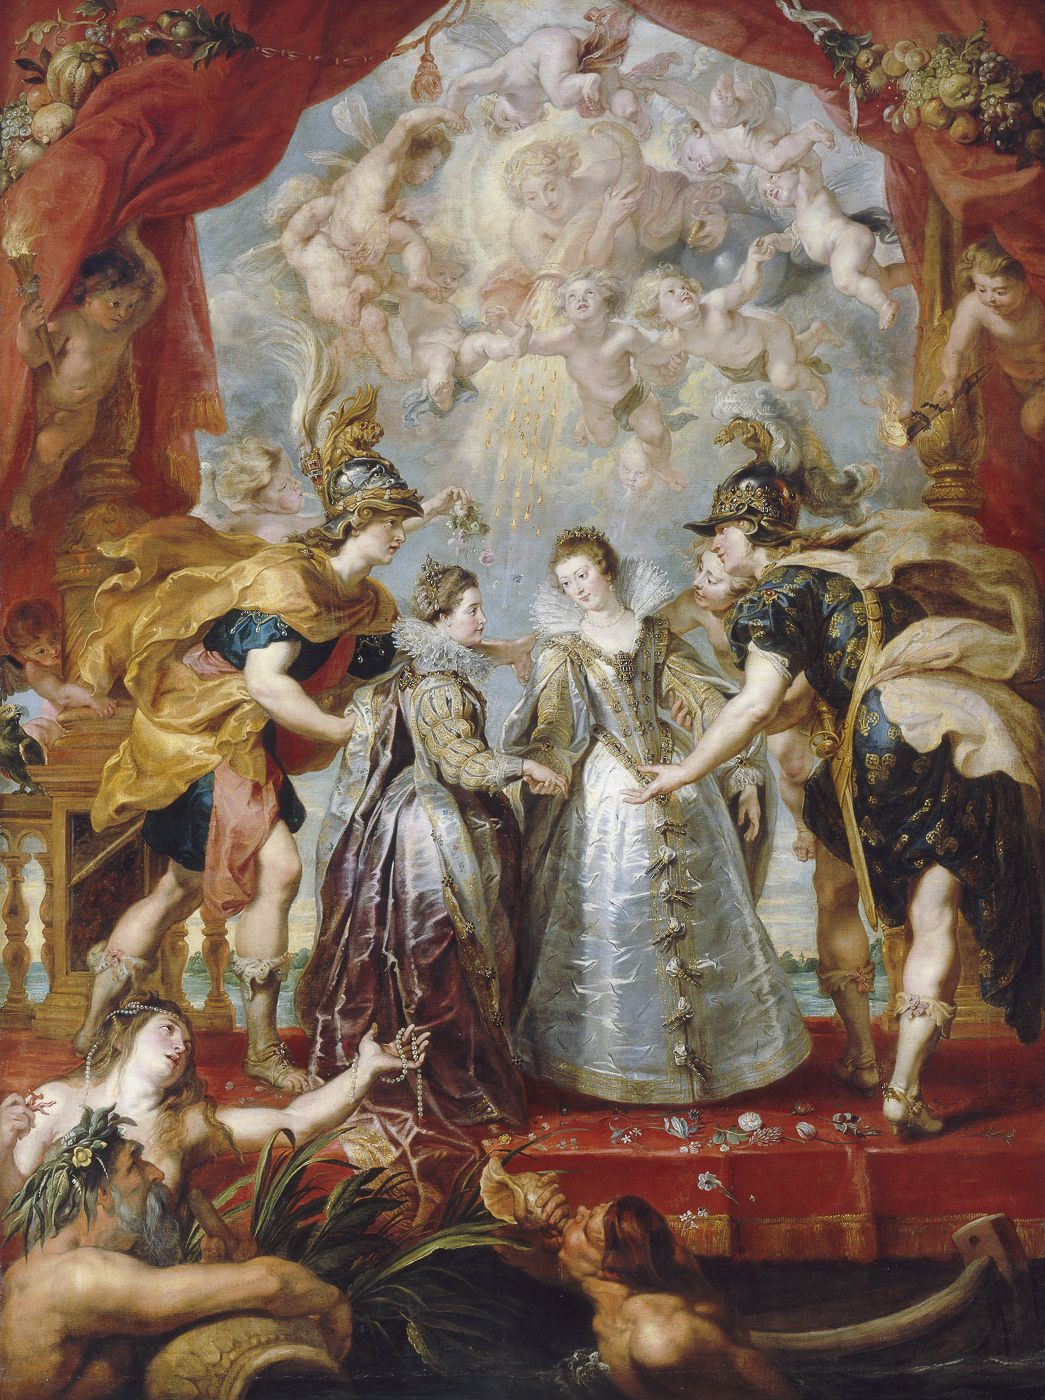 peter paul rubens Peter paul rubens at olga's gallery one of the largest collections of paintings online featuring hundreds of artists and thousands of works large, high-quality images.